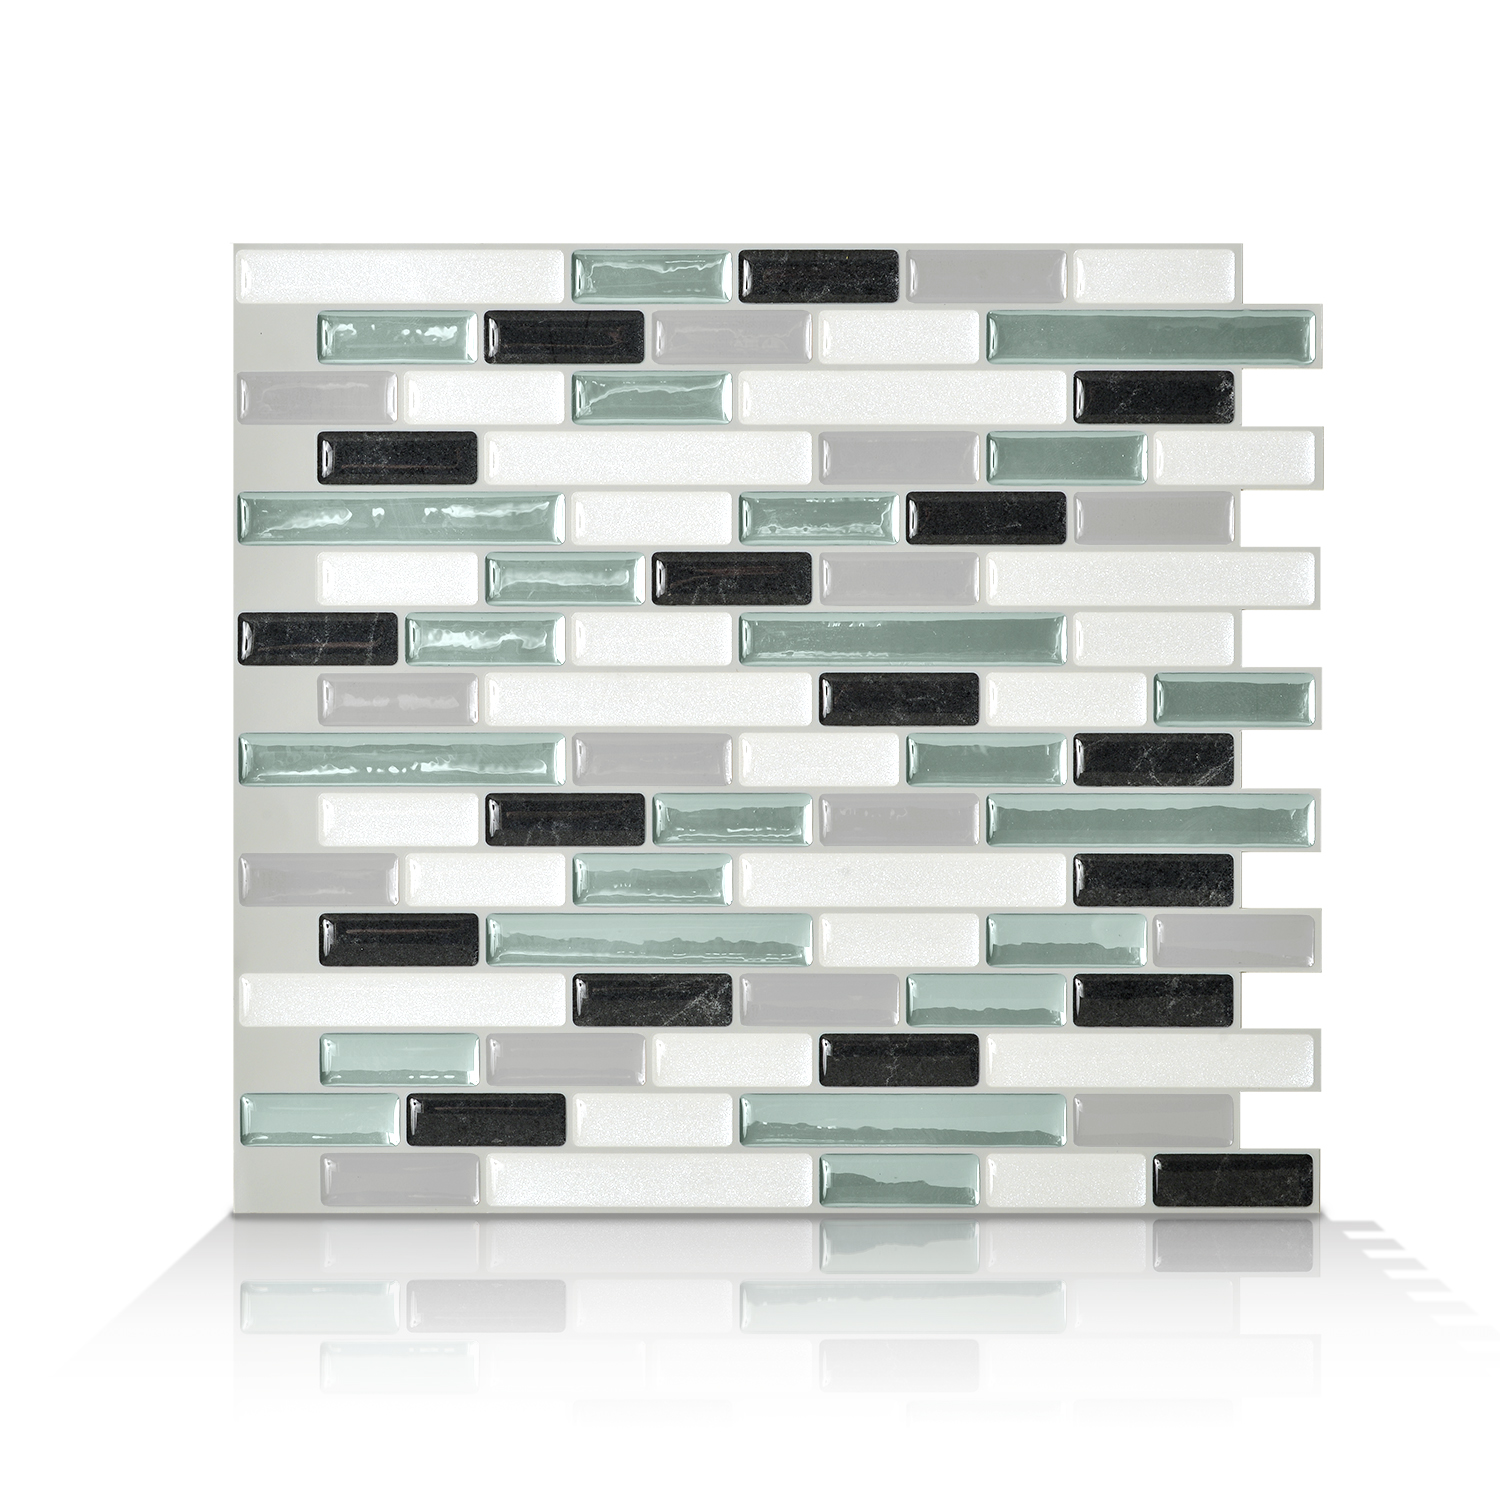 Smart Tiles 10.20 in x 9.10 in Peel and Stick Self-Adhesive Mosaic Backsplash Wall Tile - Muretto Prairie (each)